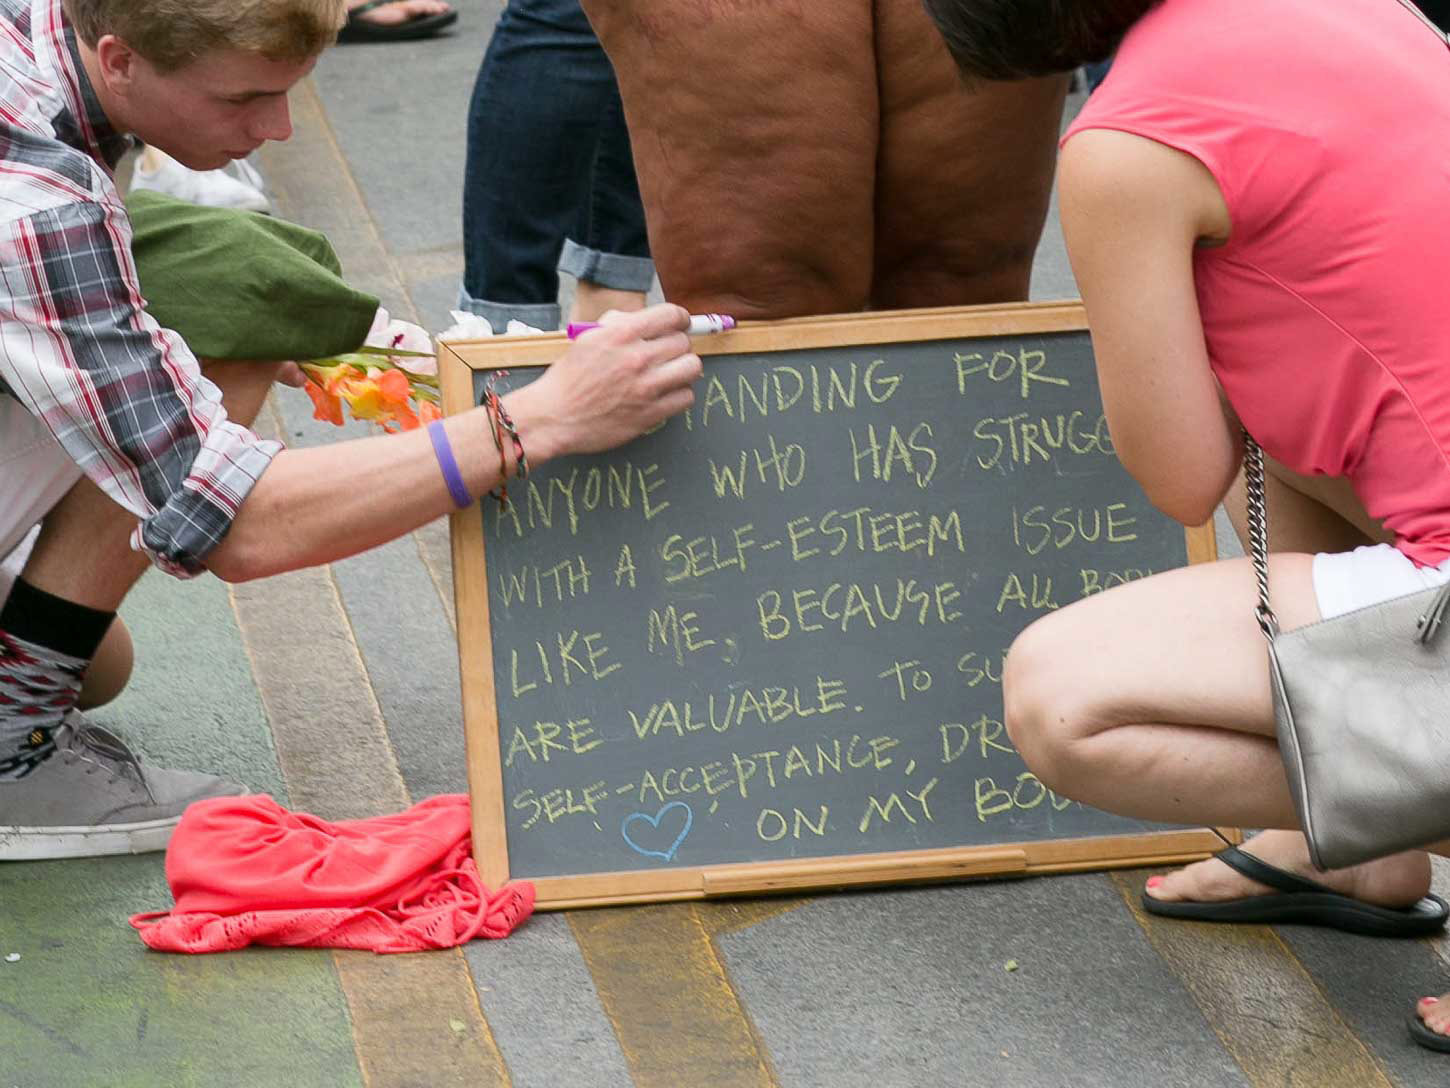 "Two people crouch by the chalkboard sign, which says, ""I am standing for anyone who has struggled with a self-esteem issue like me, because all bodies are valuable. To support self-acceptance, draw a heart on my body."""